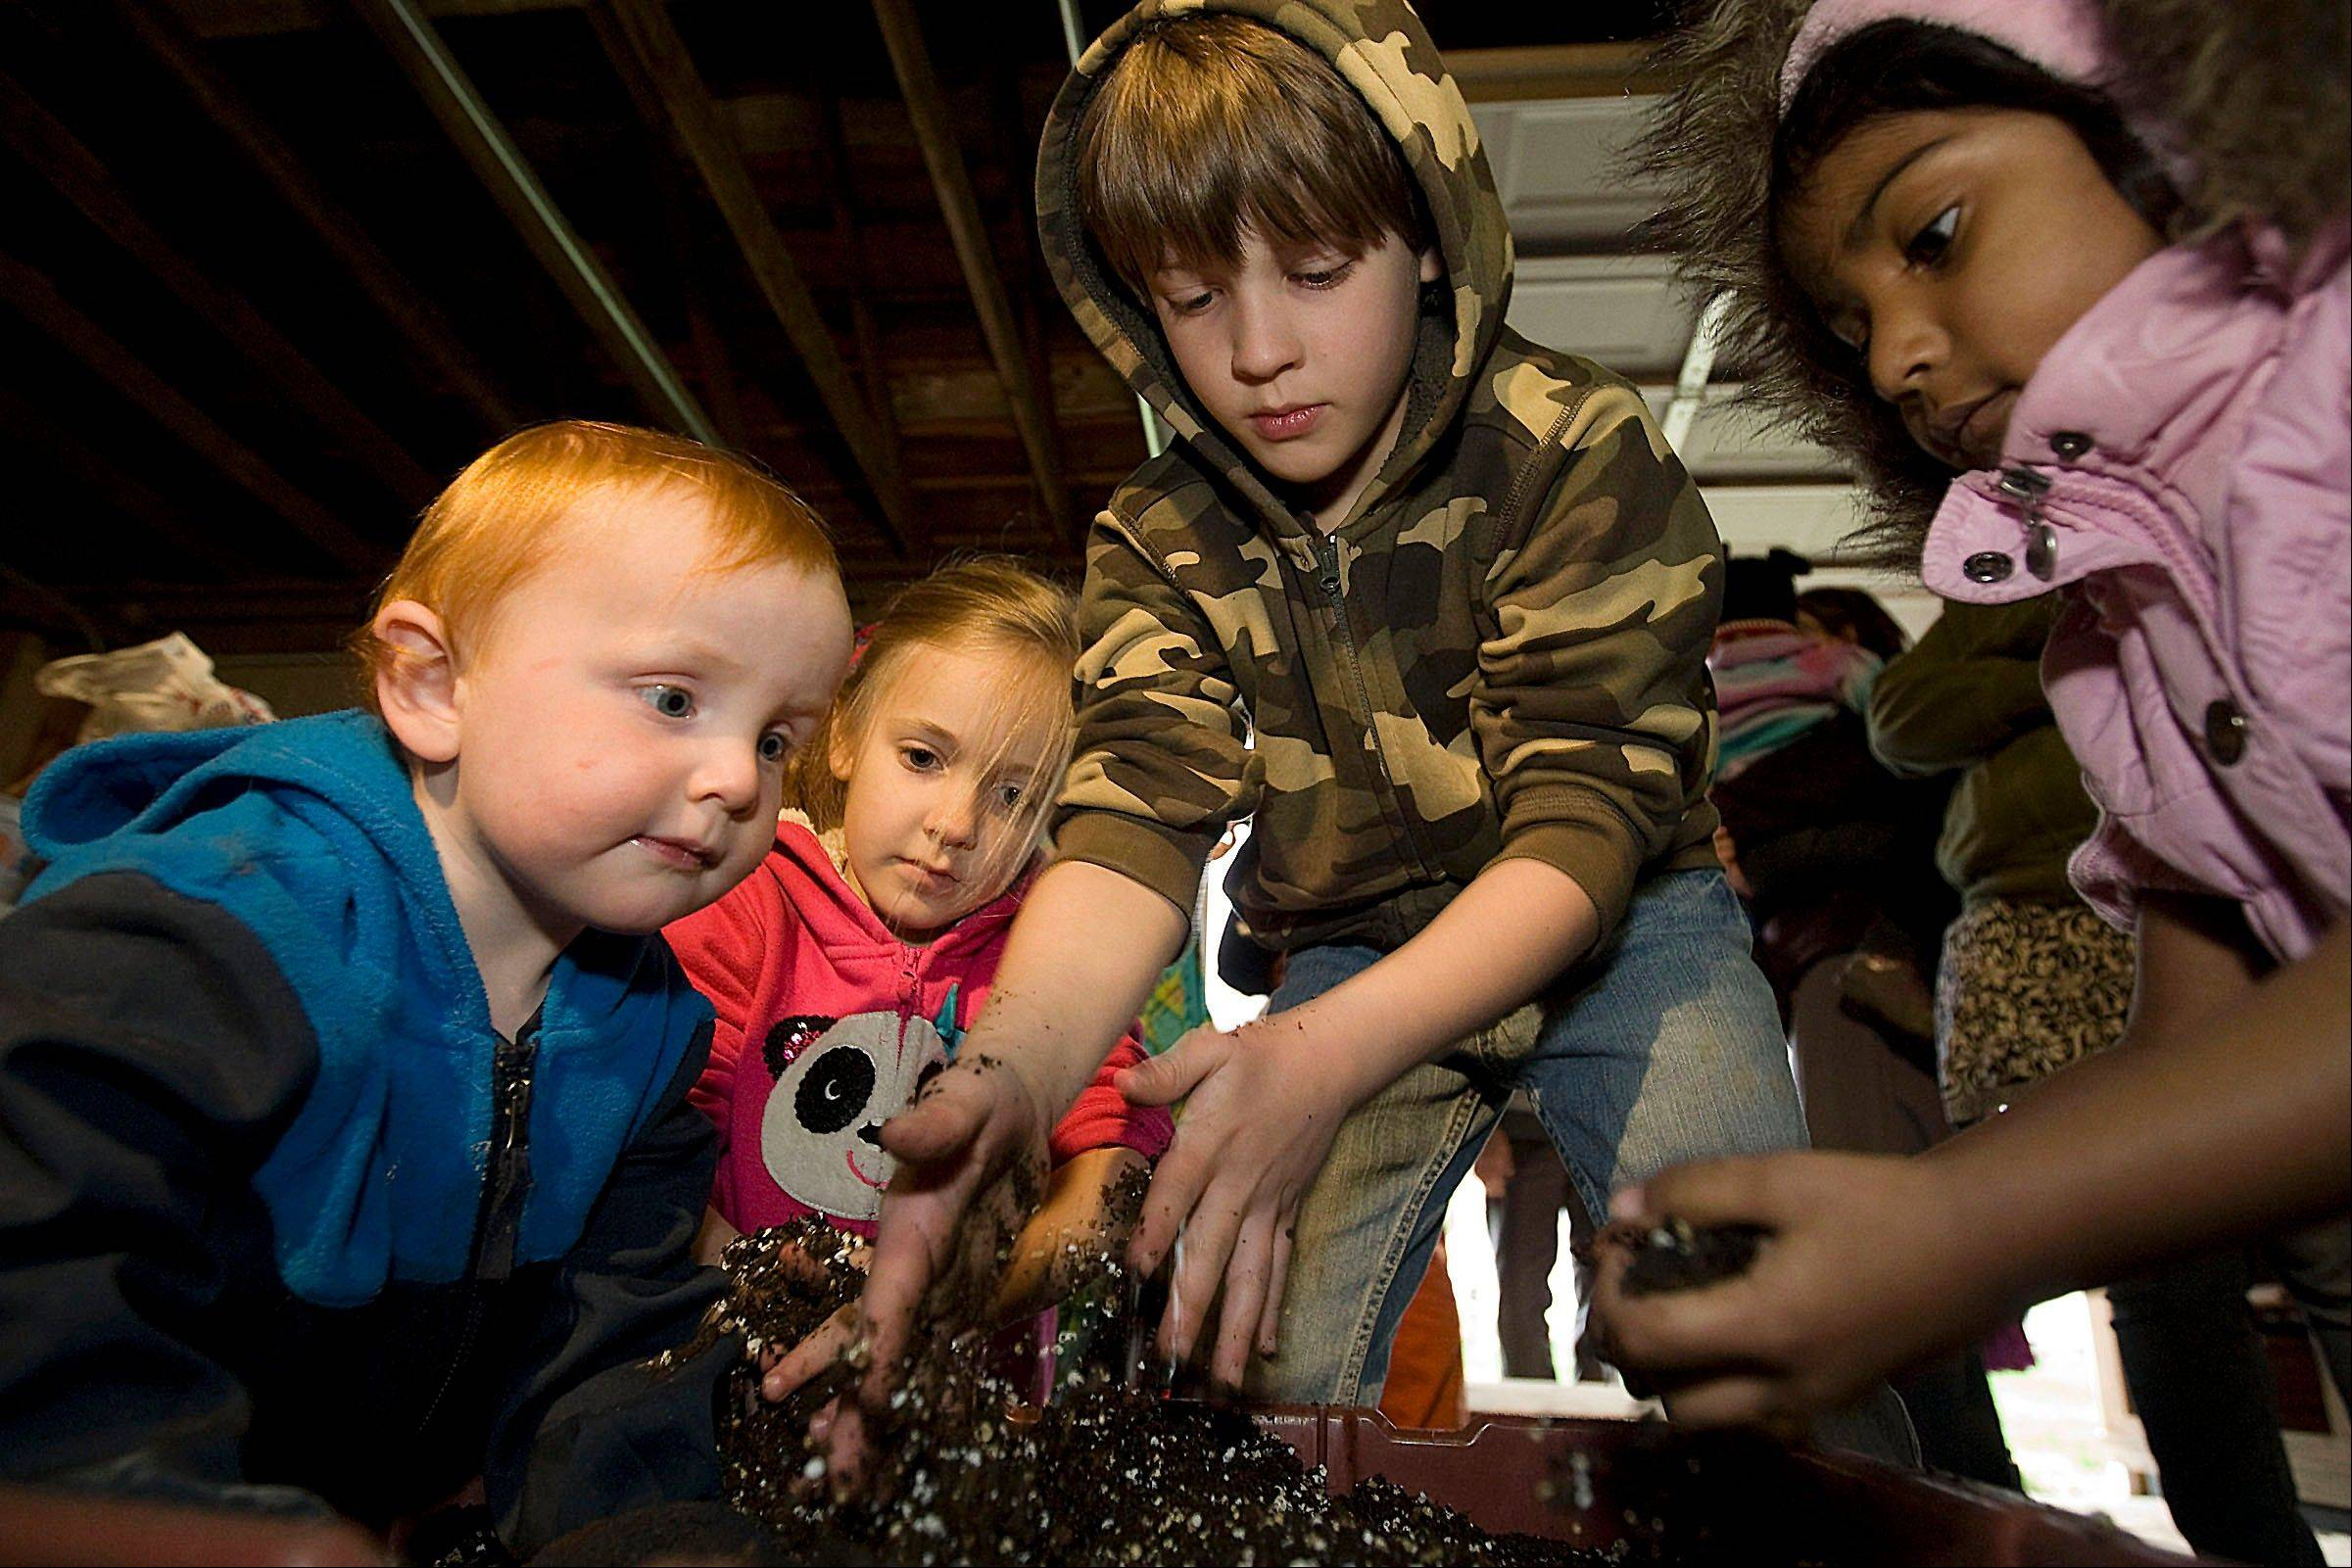 From left, Dirk Stephens, 15 months, Charlotte Bramer,6, Wyatt Bramer, 8, and Mridhvika Krishnaraj, 3, all of Decatur, mix perlite with soil before planting seeds during the seeding party of the ìWatch Me Growî group at the Golden Oldies Farm near Macon.